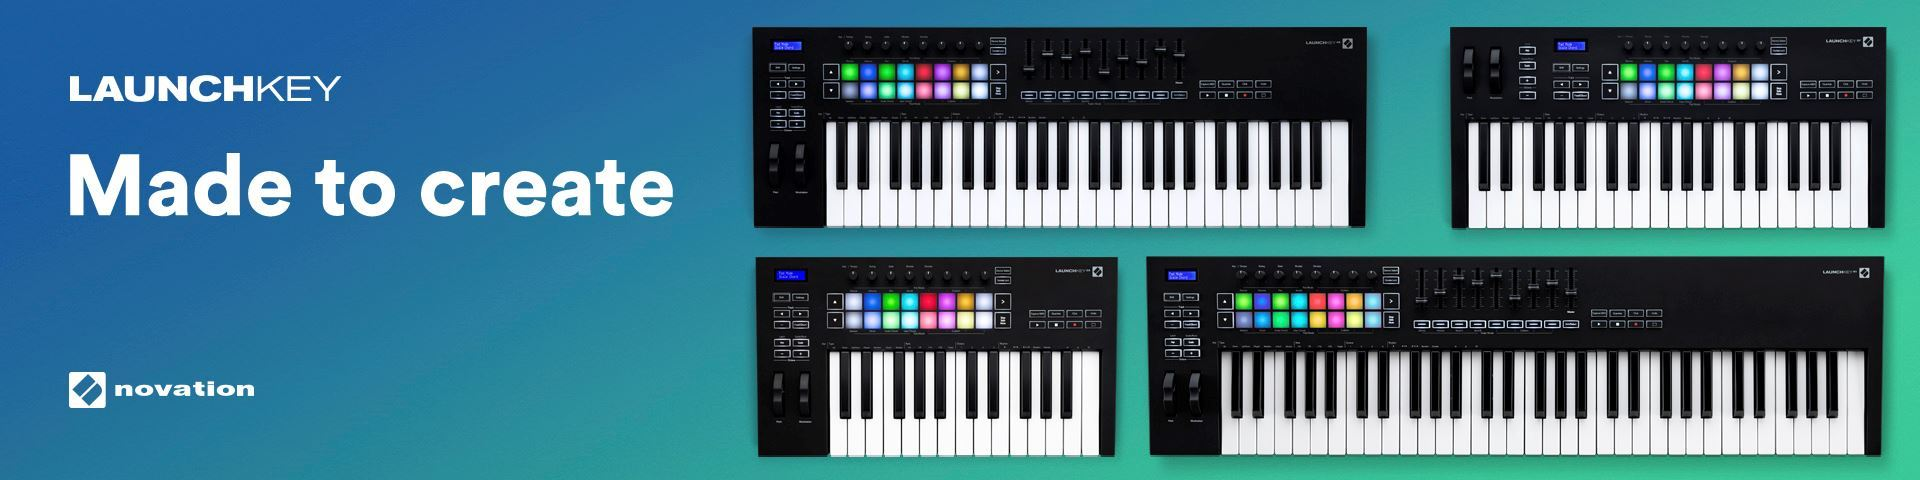 The new Novation Launchkey Mk 3 - Pre-Order today!